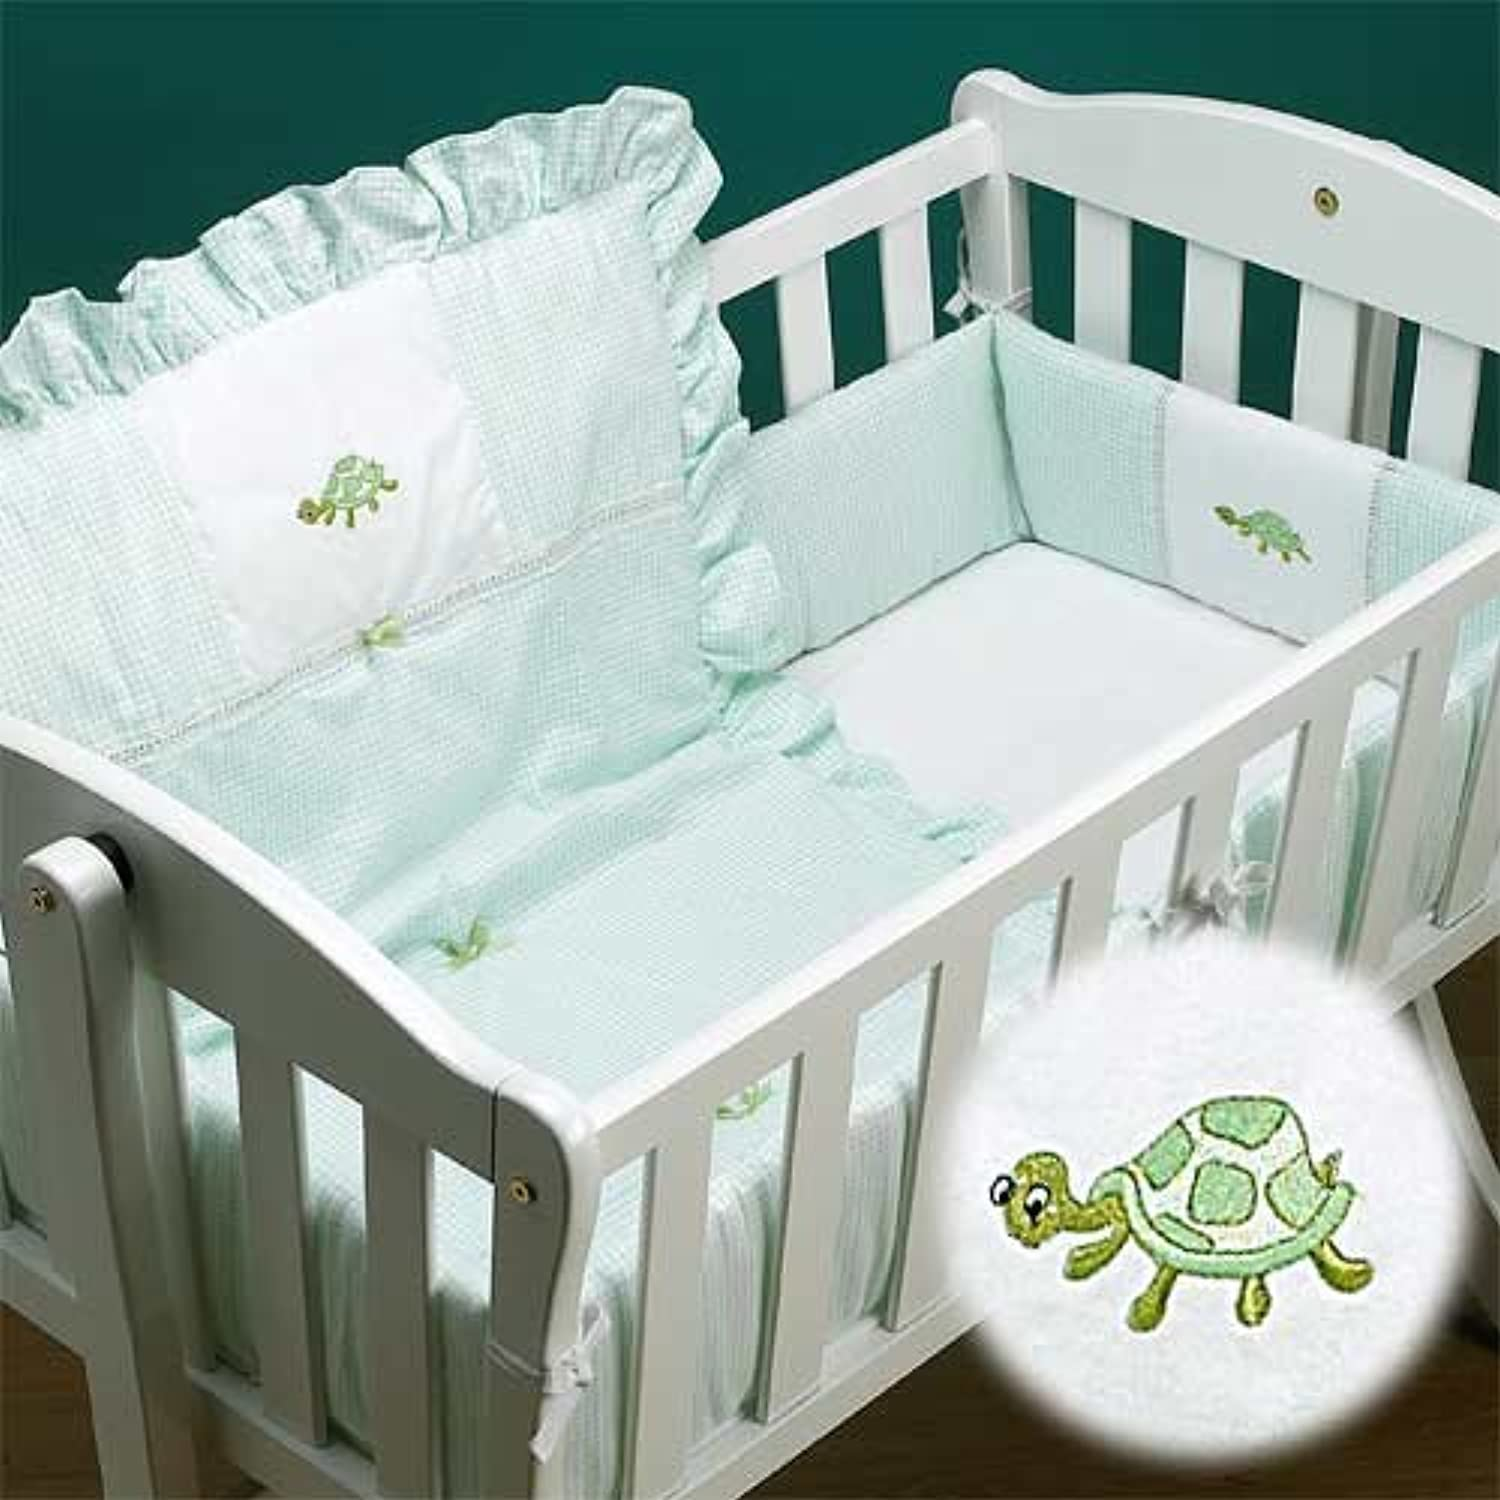 Baby Doll Bedding Gingham Mini Crib/ Port-a-Crib Bedding Set, Turtle by BabyDoll Bedding